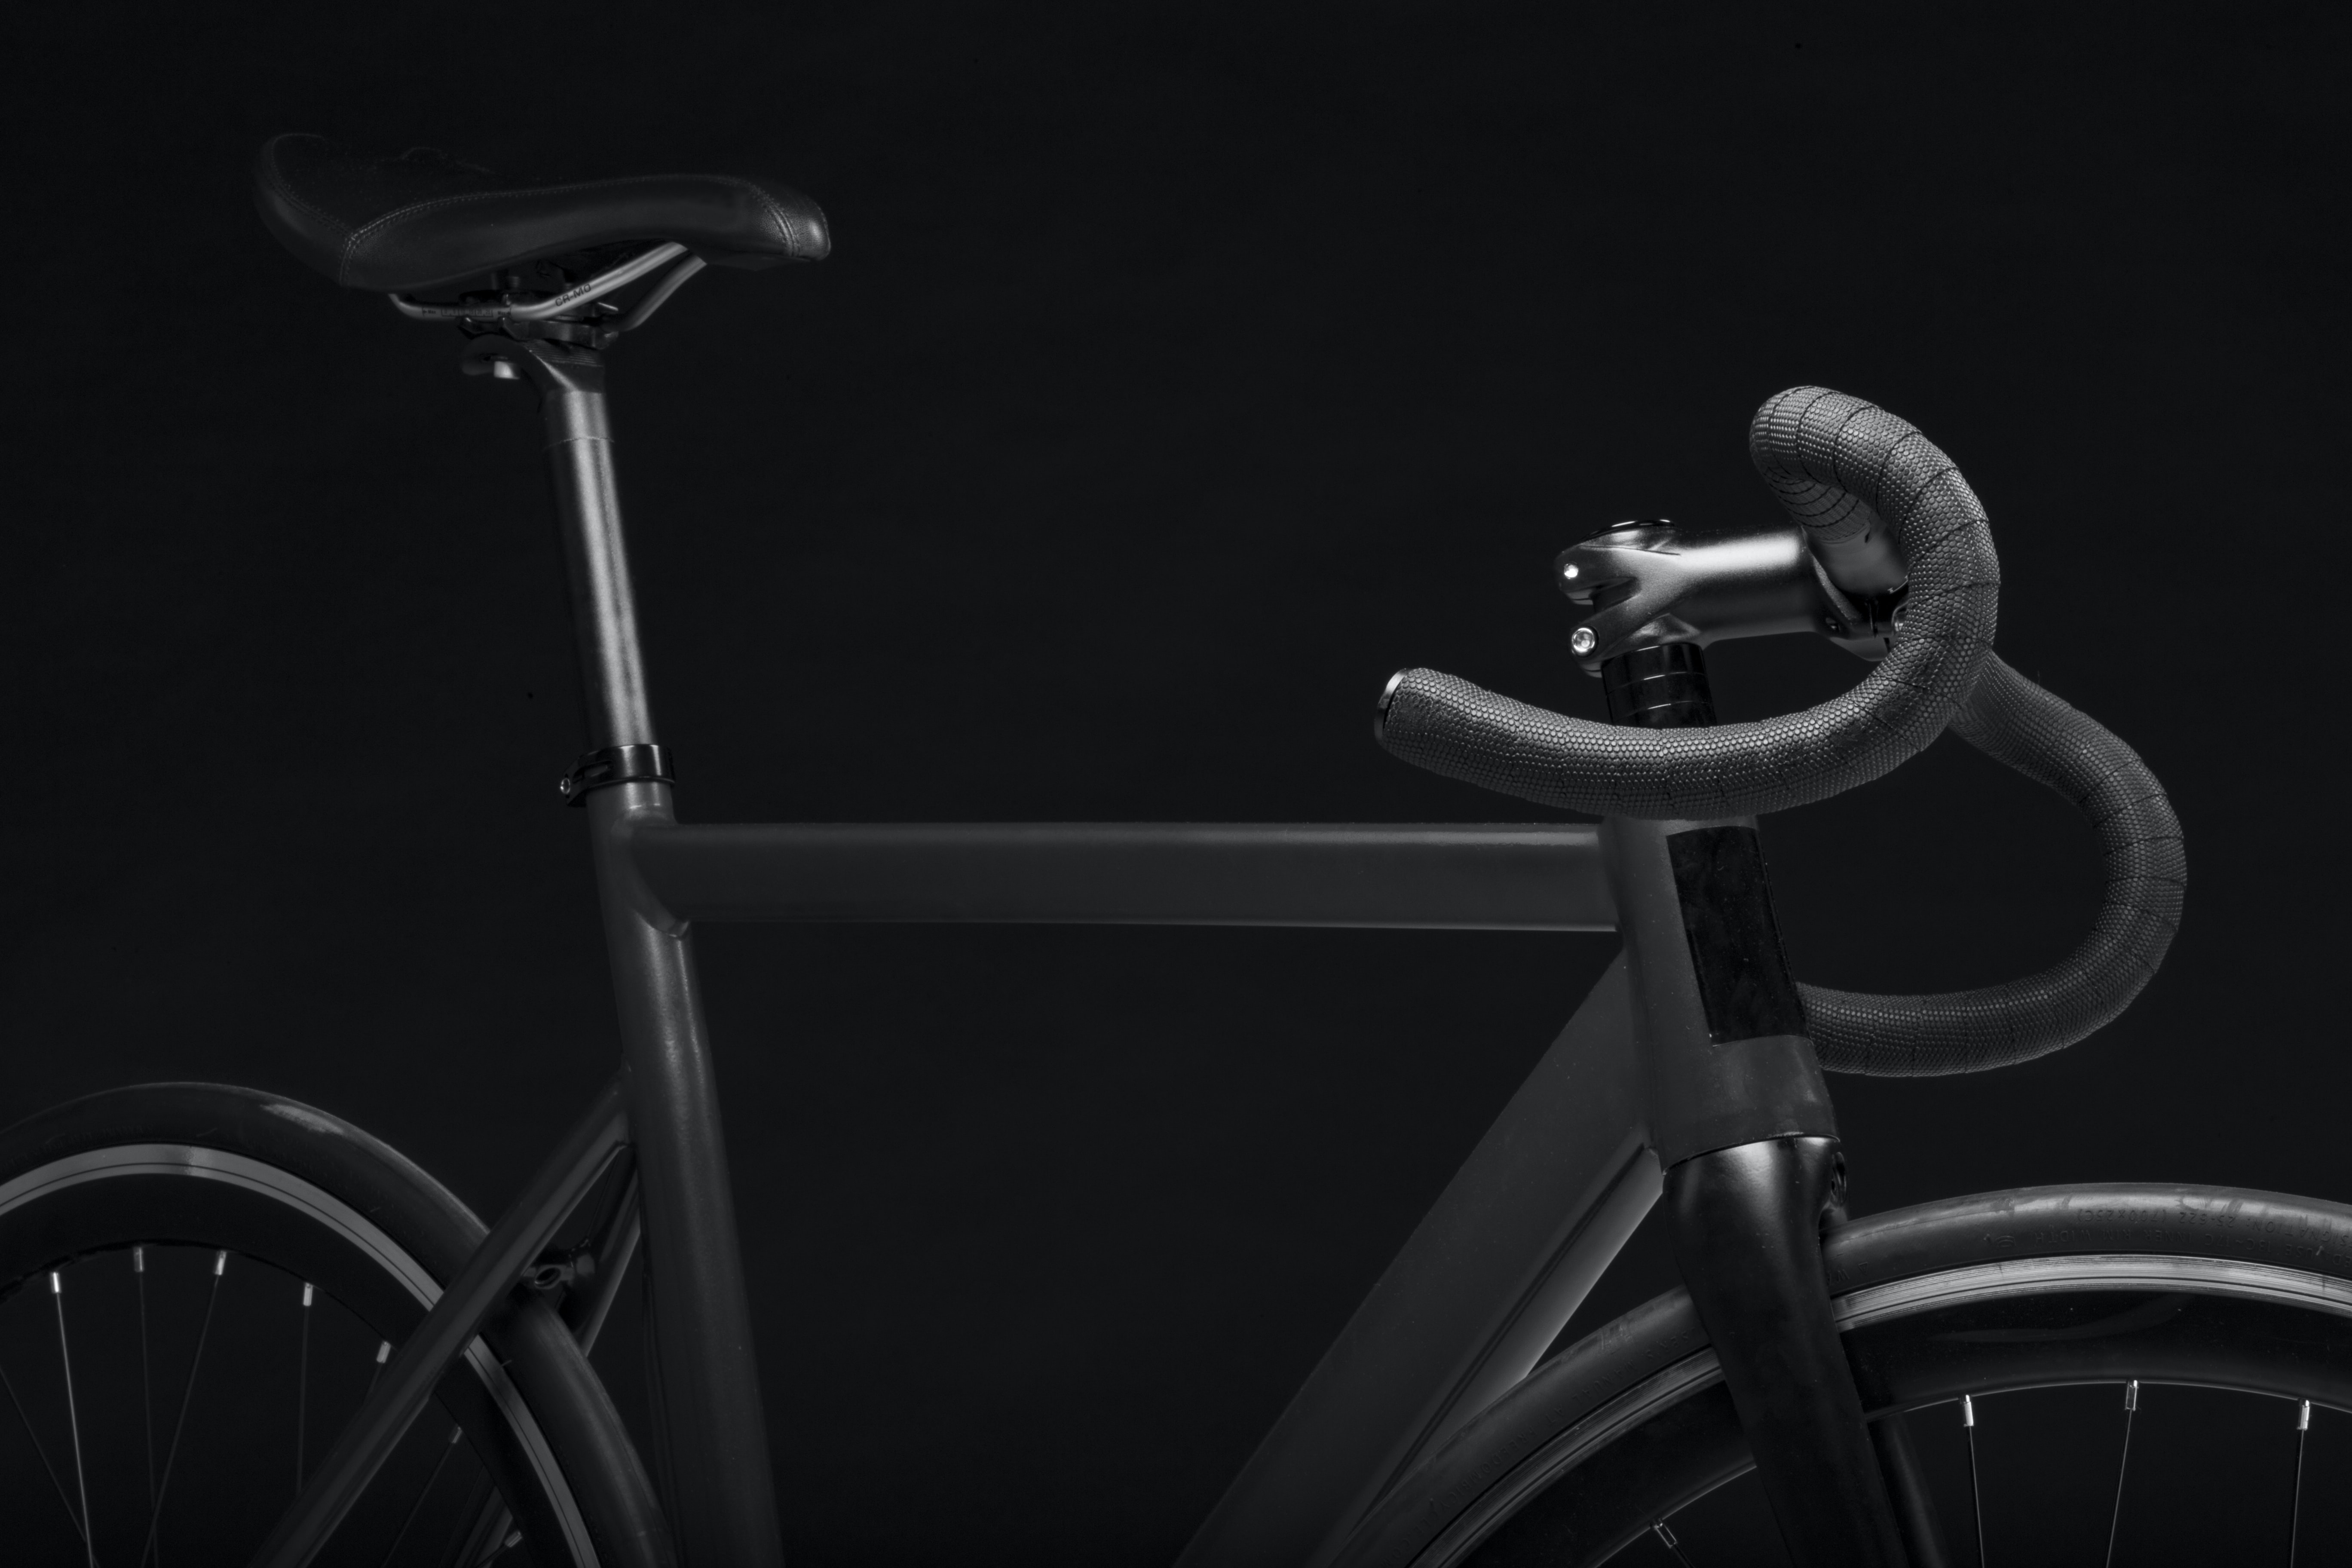 Black and white shot of racing bike from side